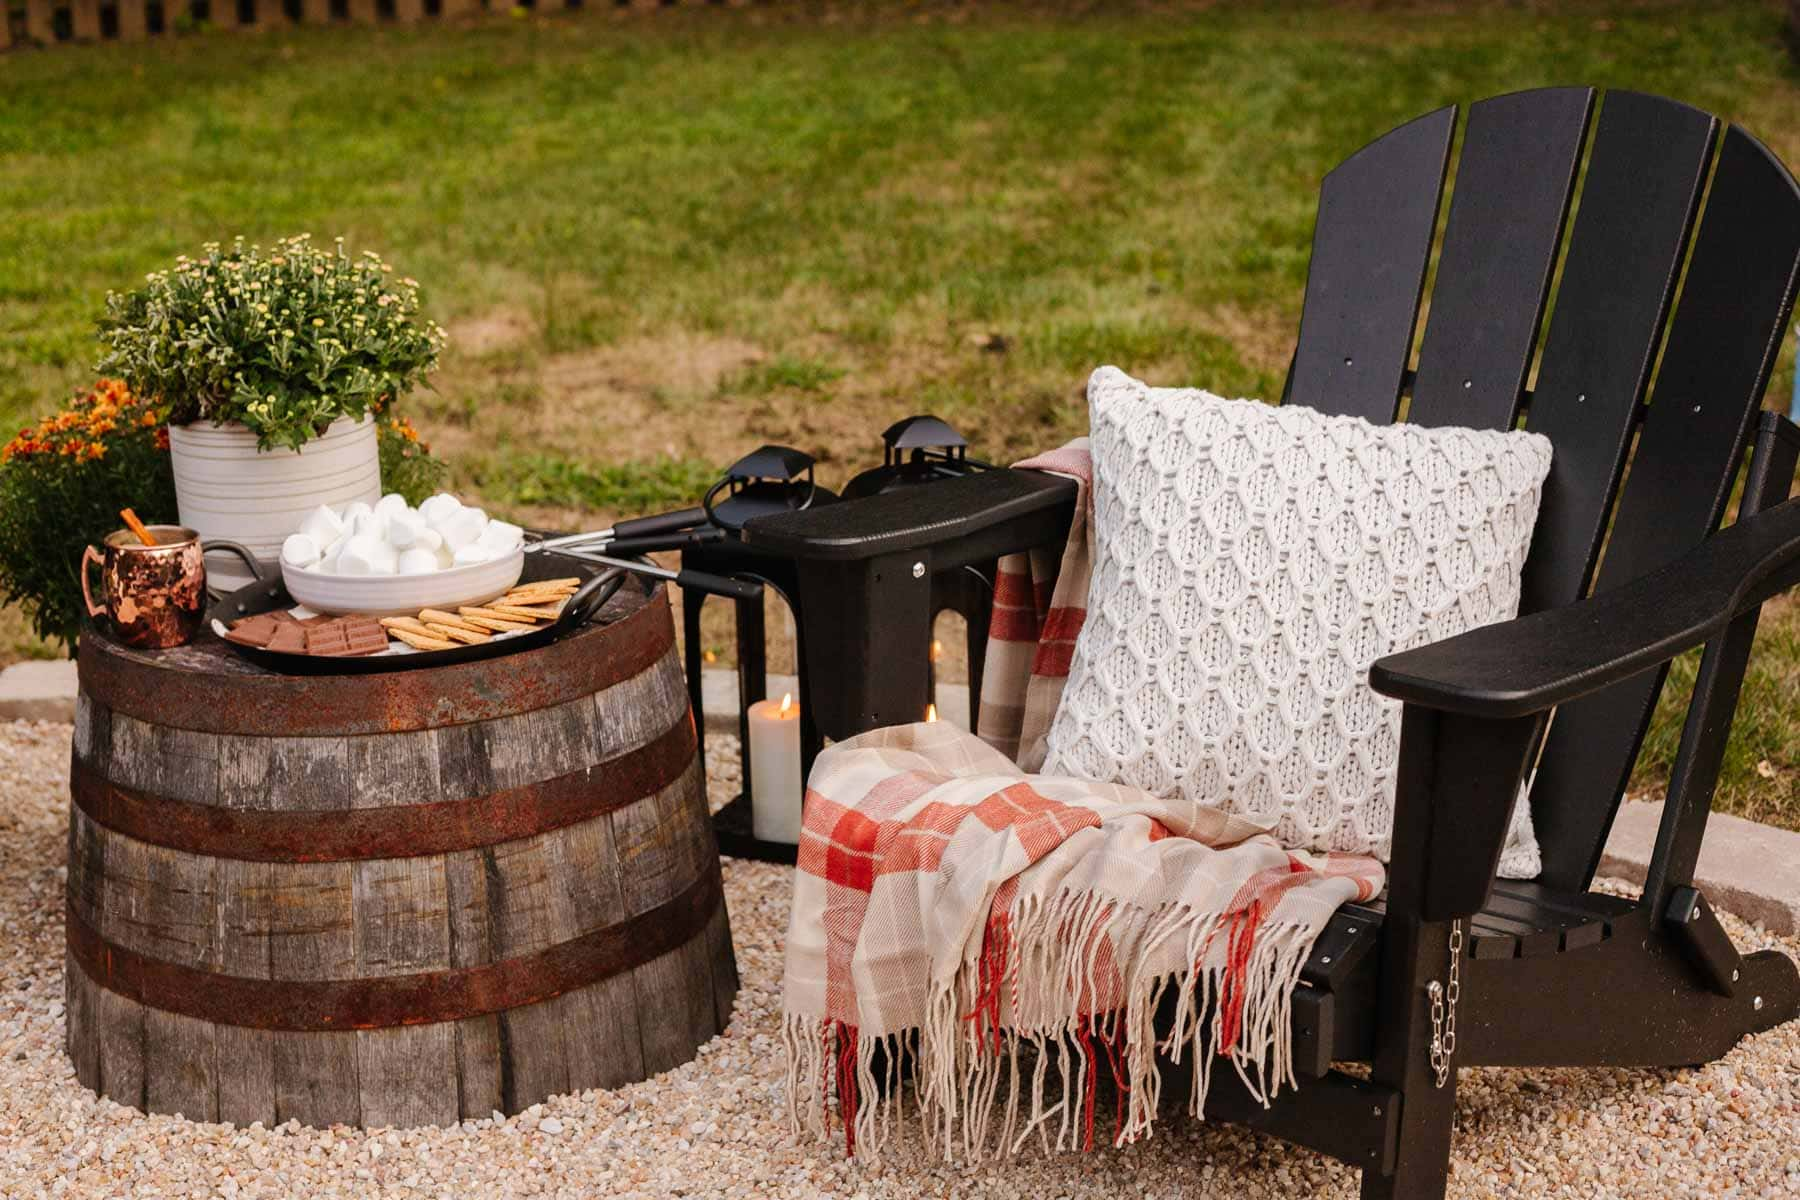 upside down barrel planter used for an outdoor table